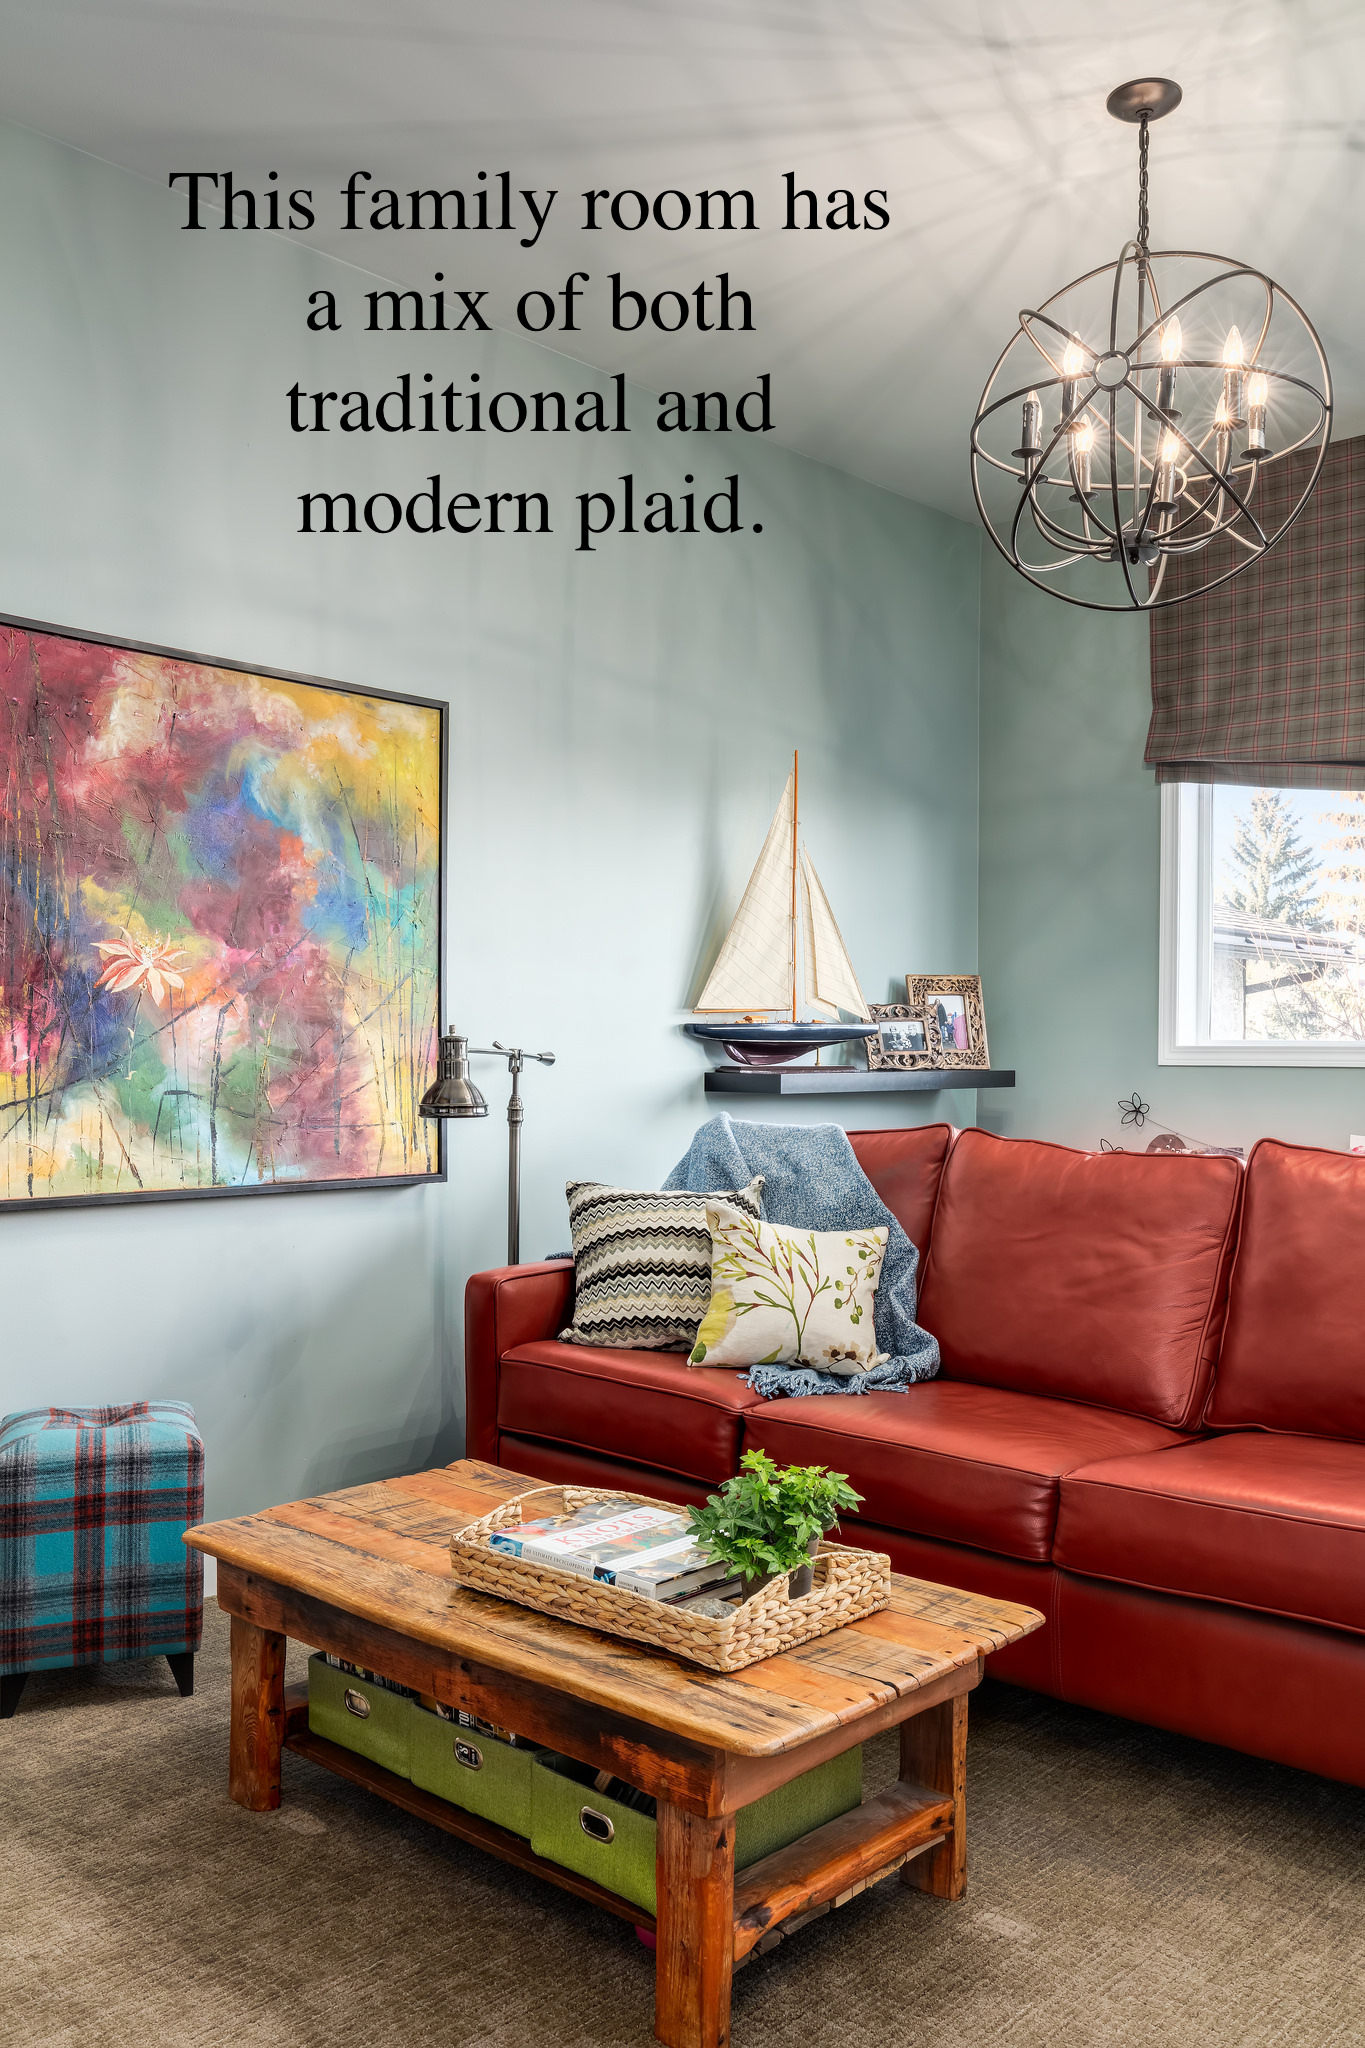 Family room has bright leather sofa that compliments the abstract painting and a colourful plaid stool